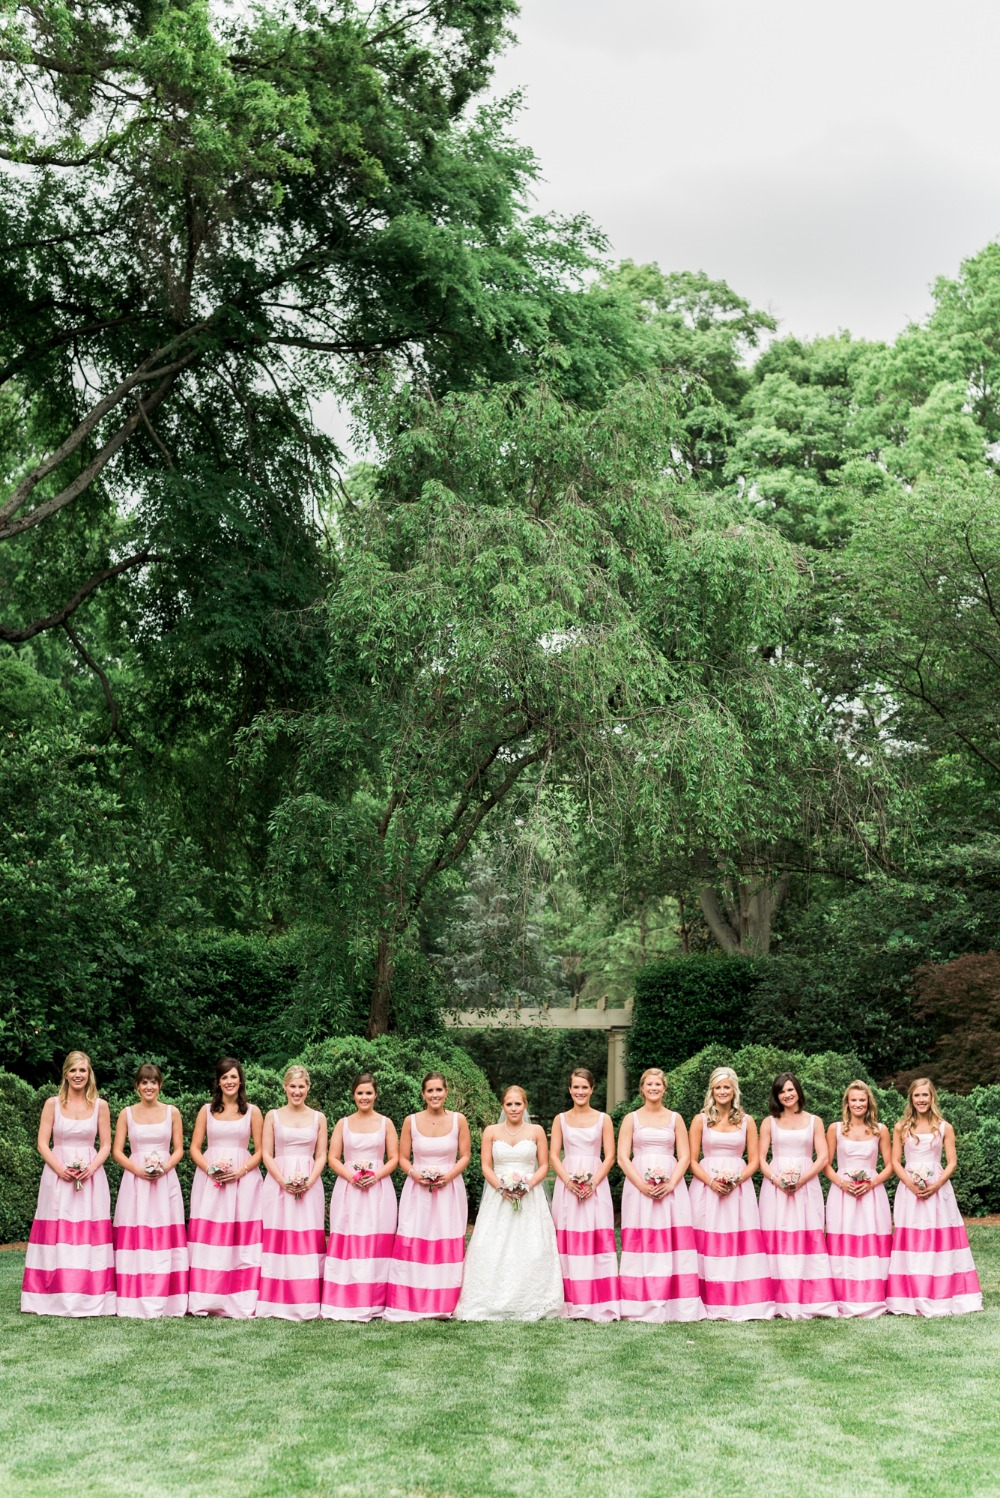 Bridesmaids in matching pink striped gowns